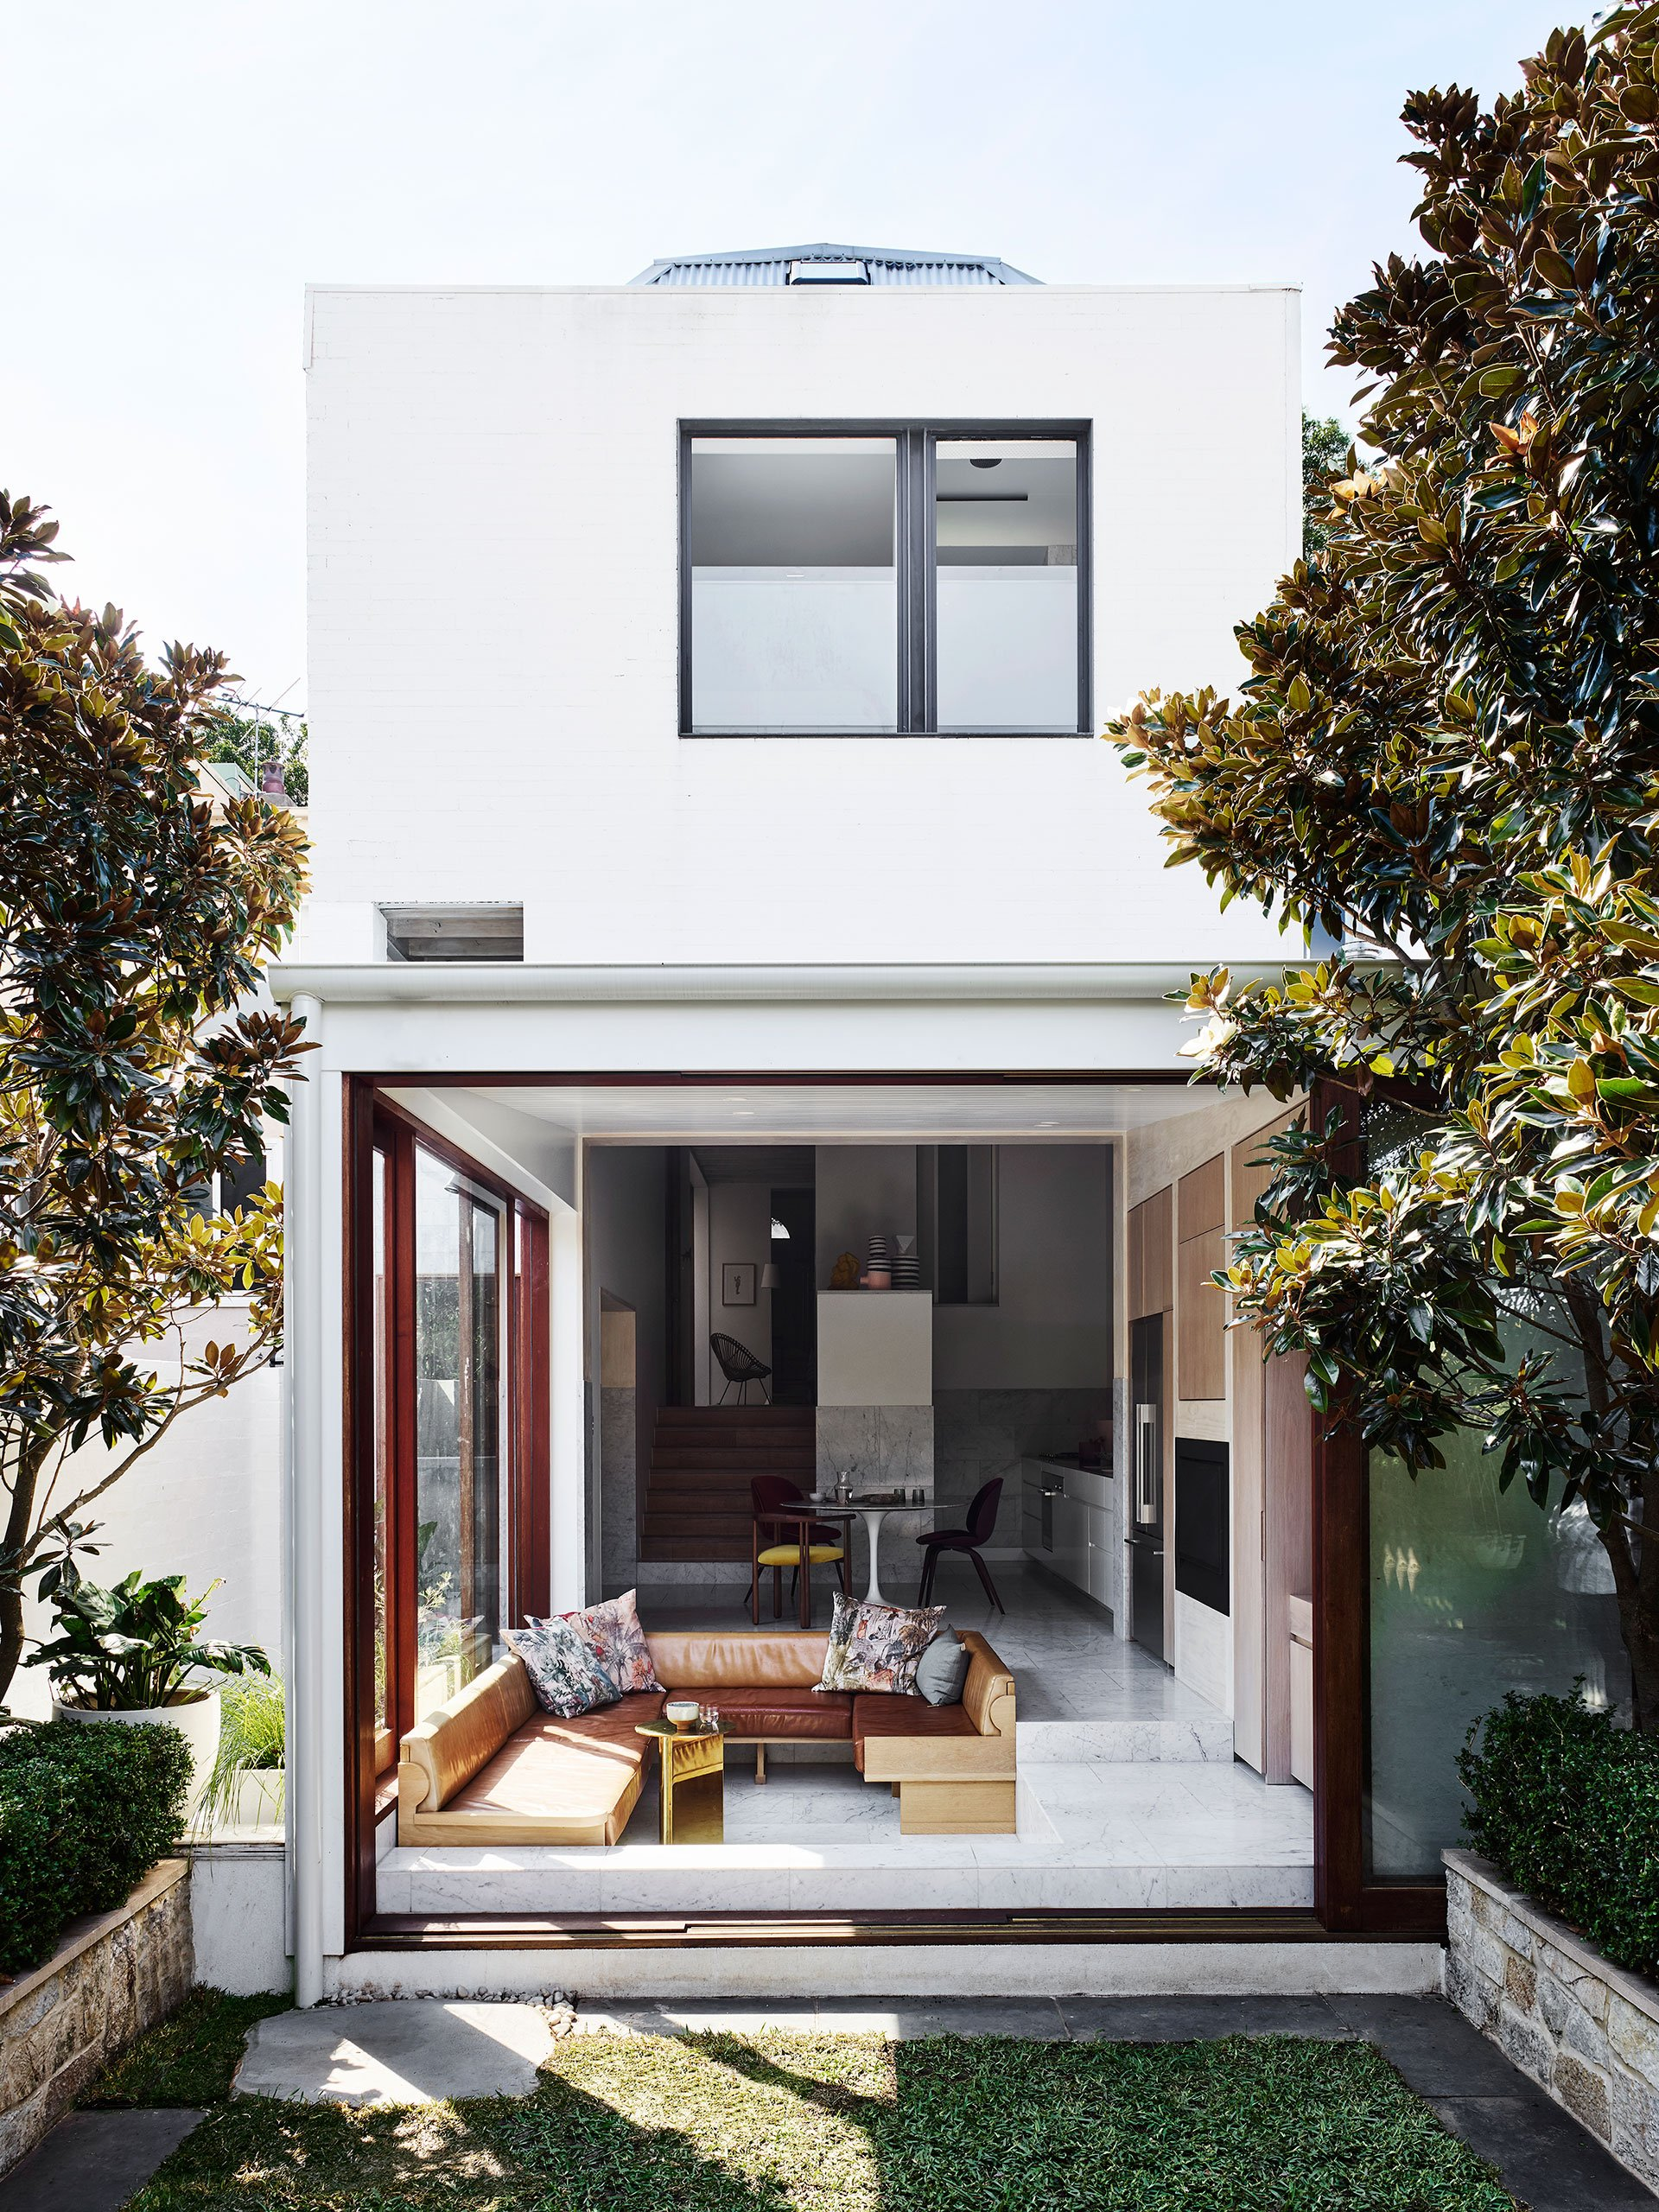 Bondi Junction House by Alexander & CO. Photography by Anson Smart.